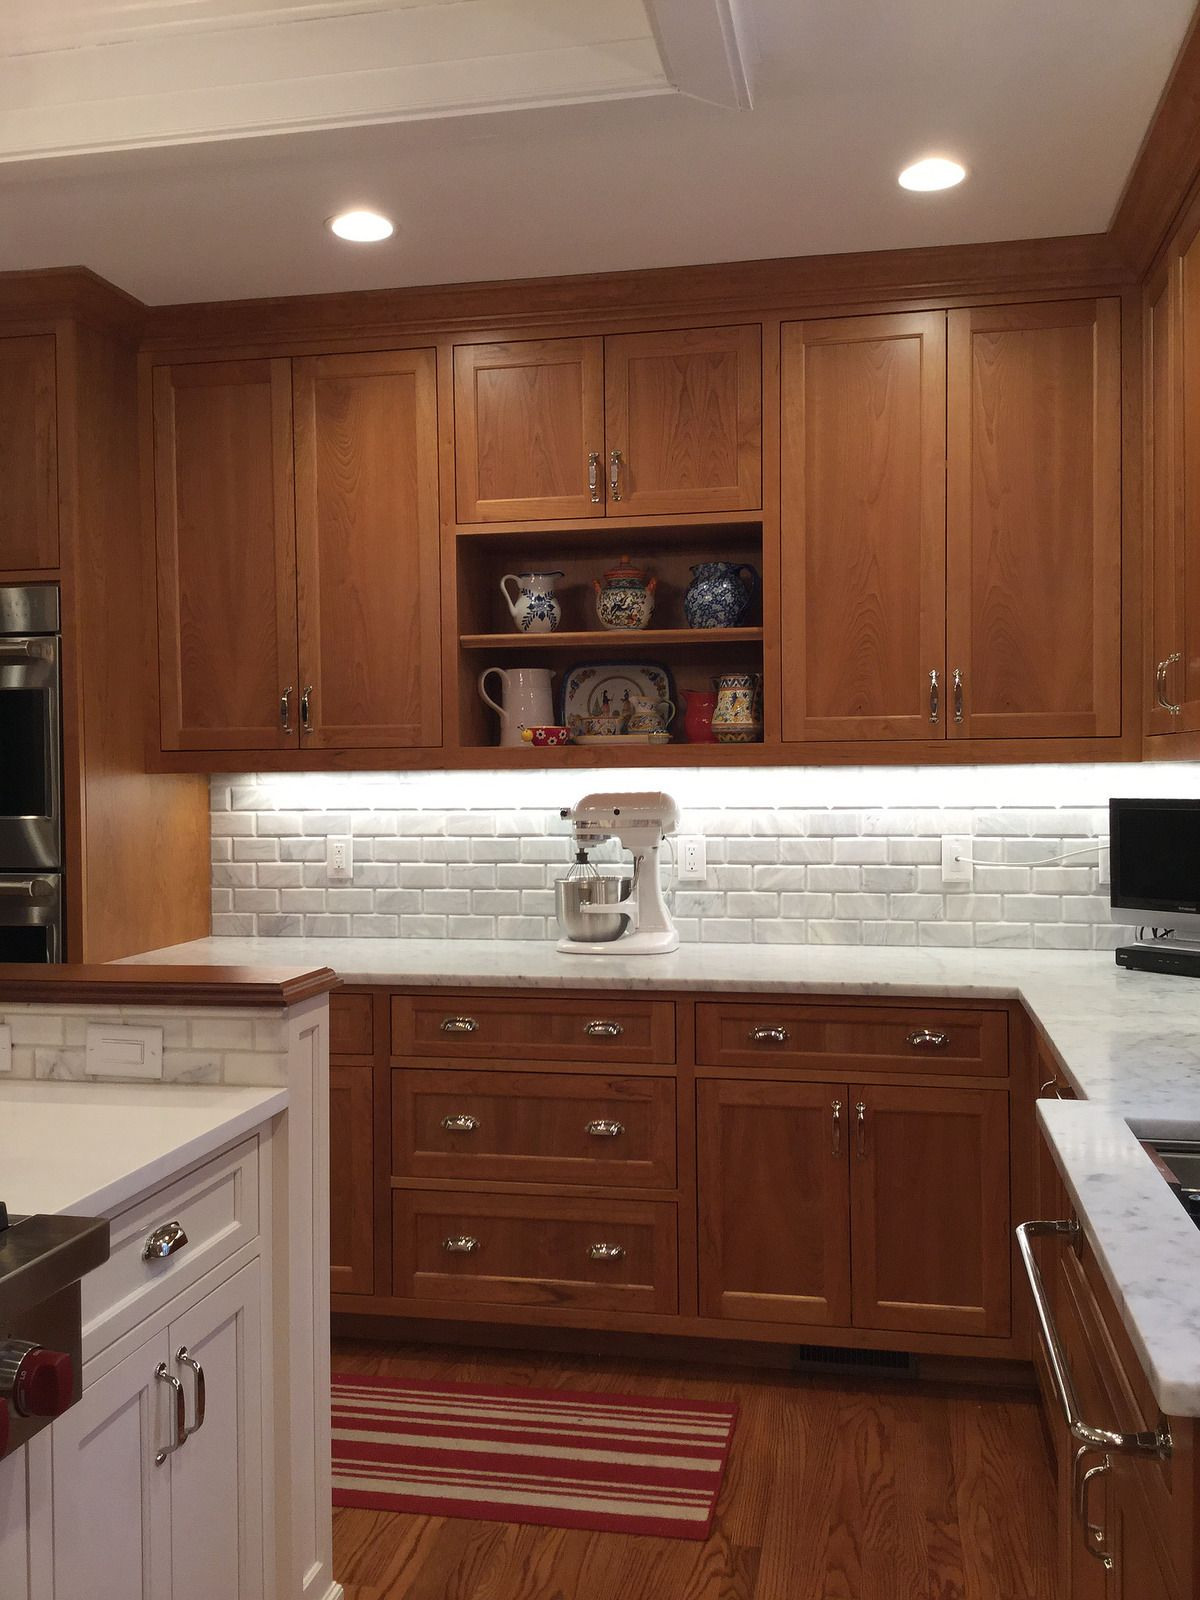 Cherry Kitchen Marble Counters 2 New Kitchen Cabinets Cherry Cabinets Kitchen Cherry Wood Kitchen Cabinets